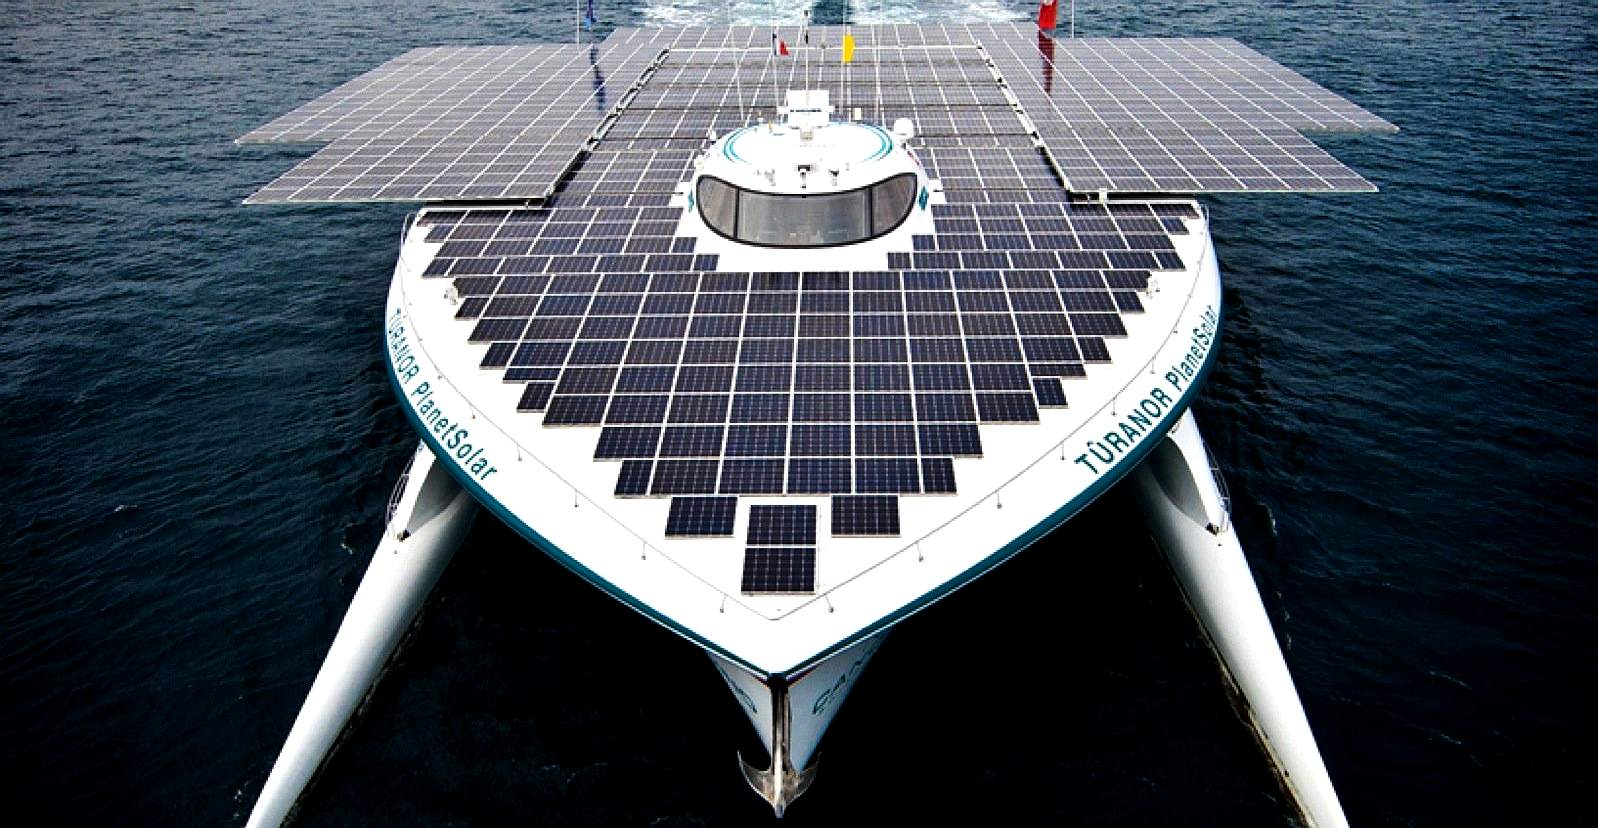 The largest solar powered boat in the world as of January 2019